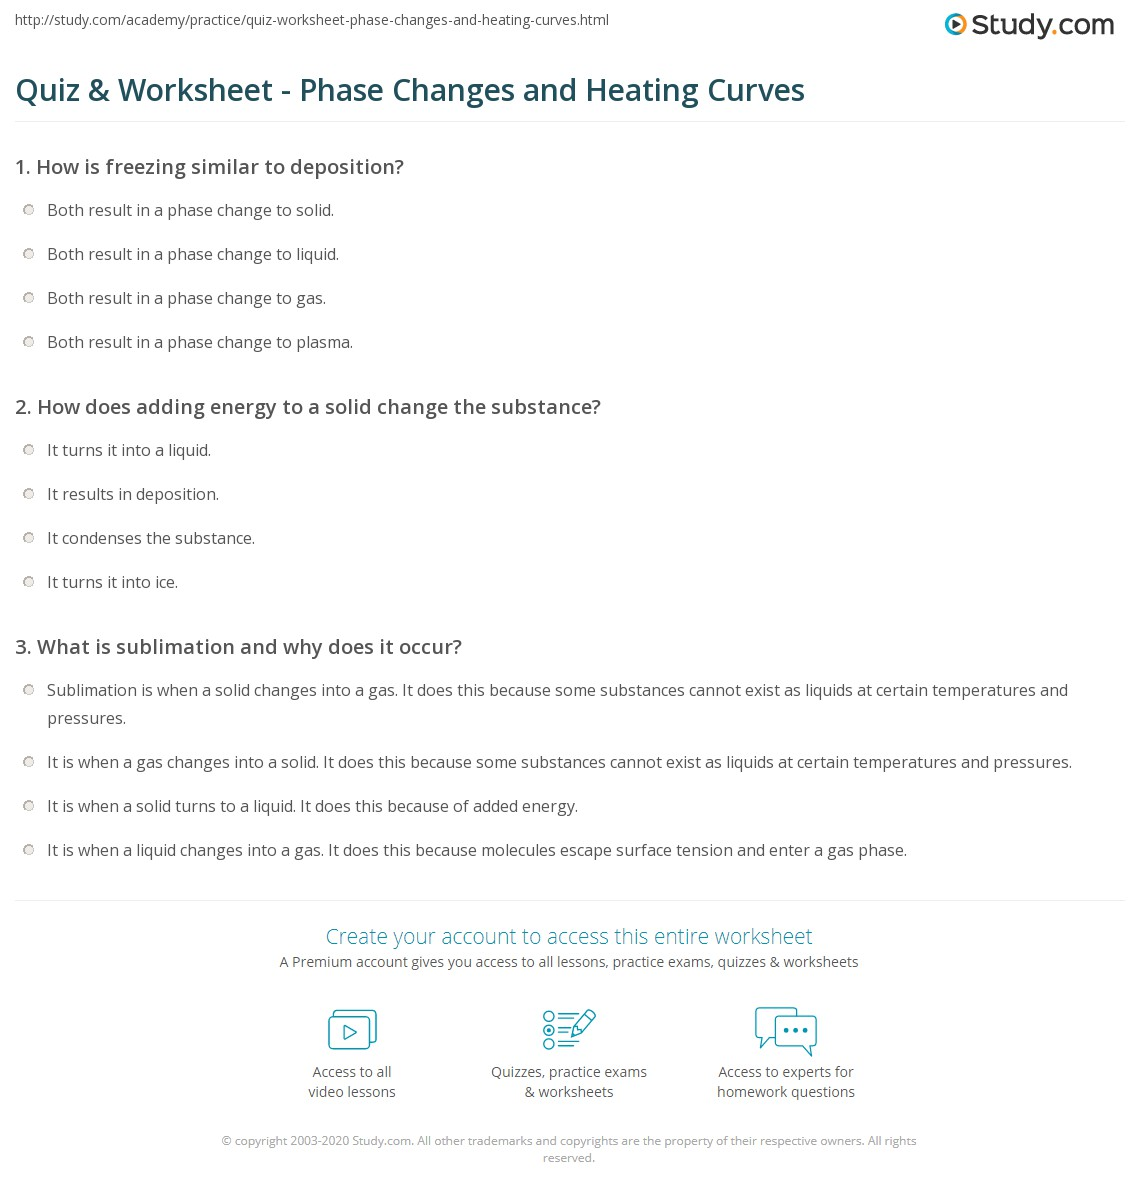 Free Worksheet Heating Curve Worksheet Answers quiz worksheet phase changes and heating curves study com print worksheet